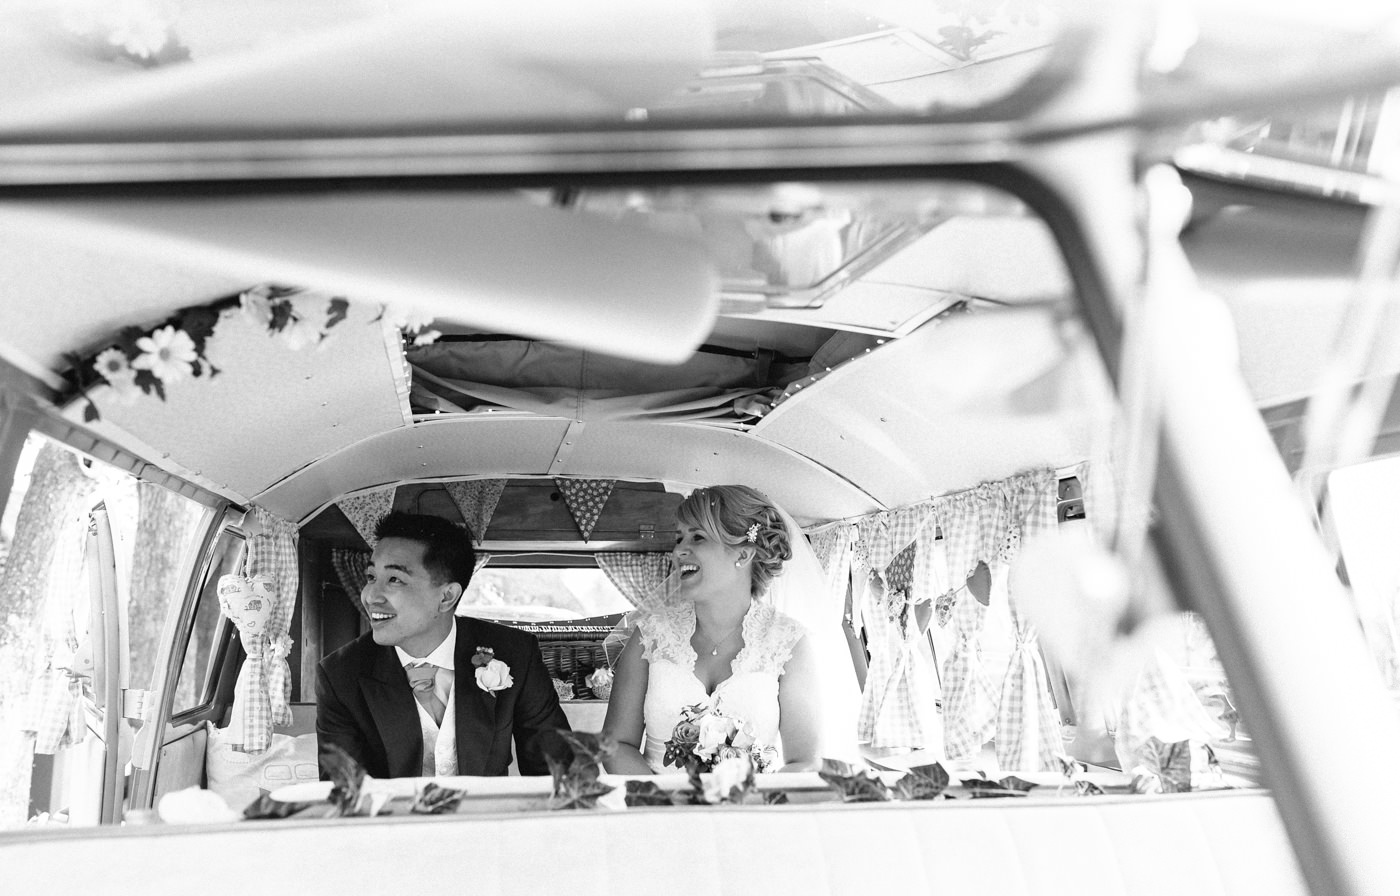 Laura + Jovi 2015 Chippenham Park Gardens ALEX WARD PHOTO -8075.jpg